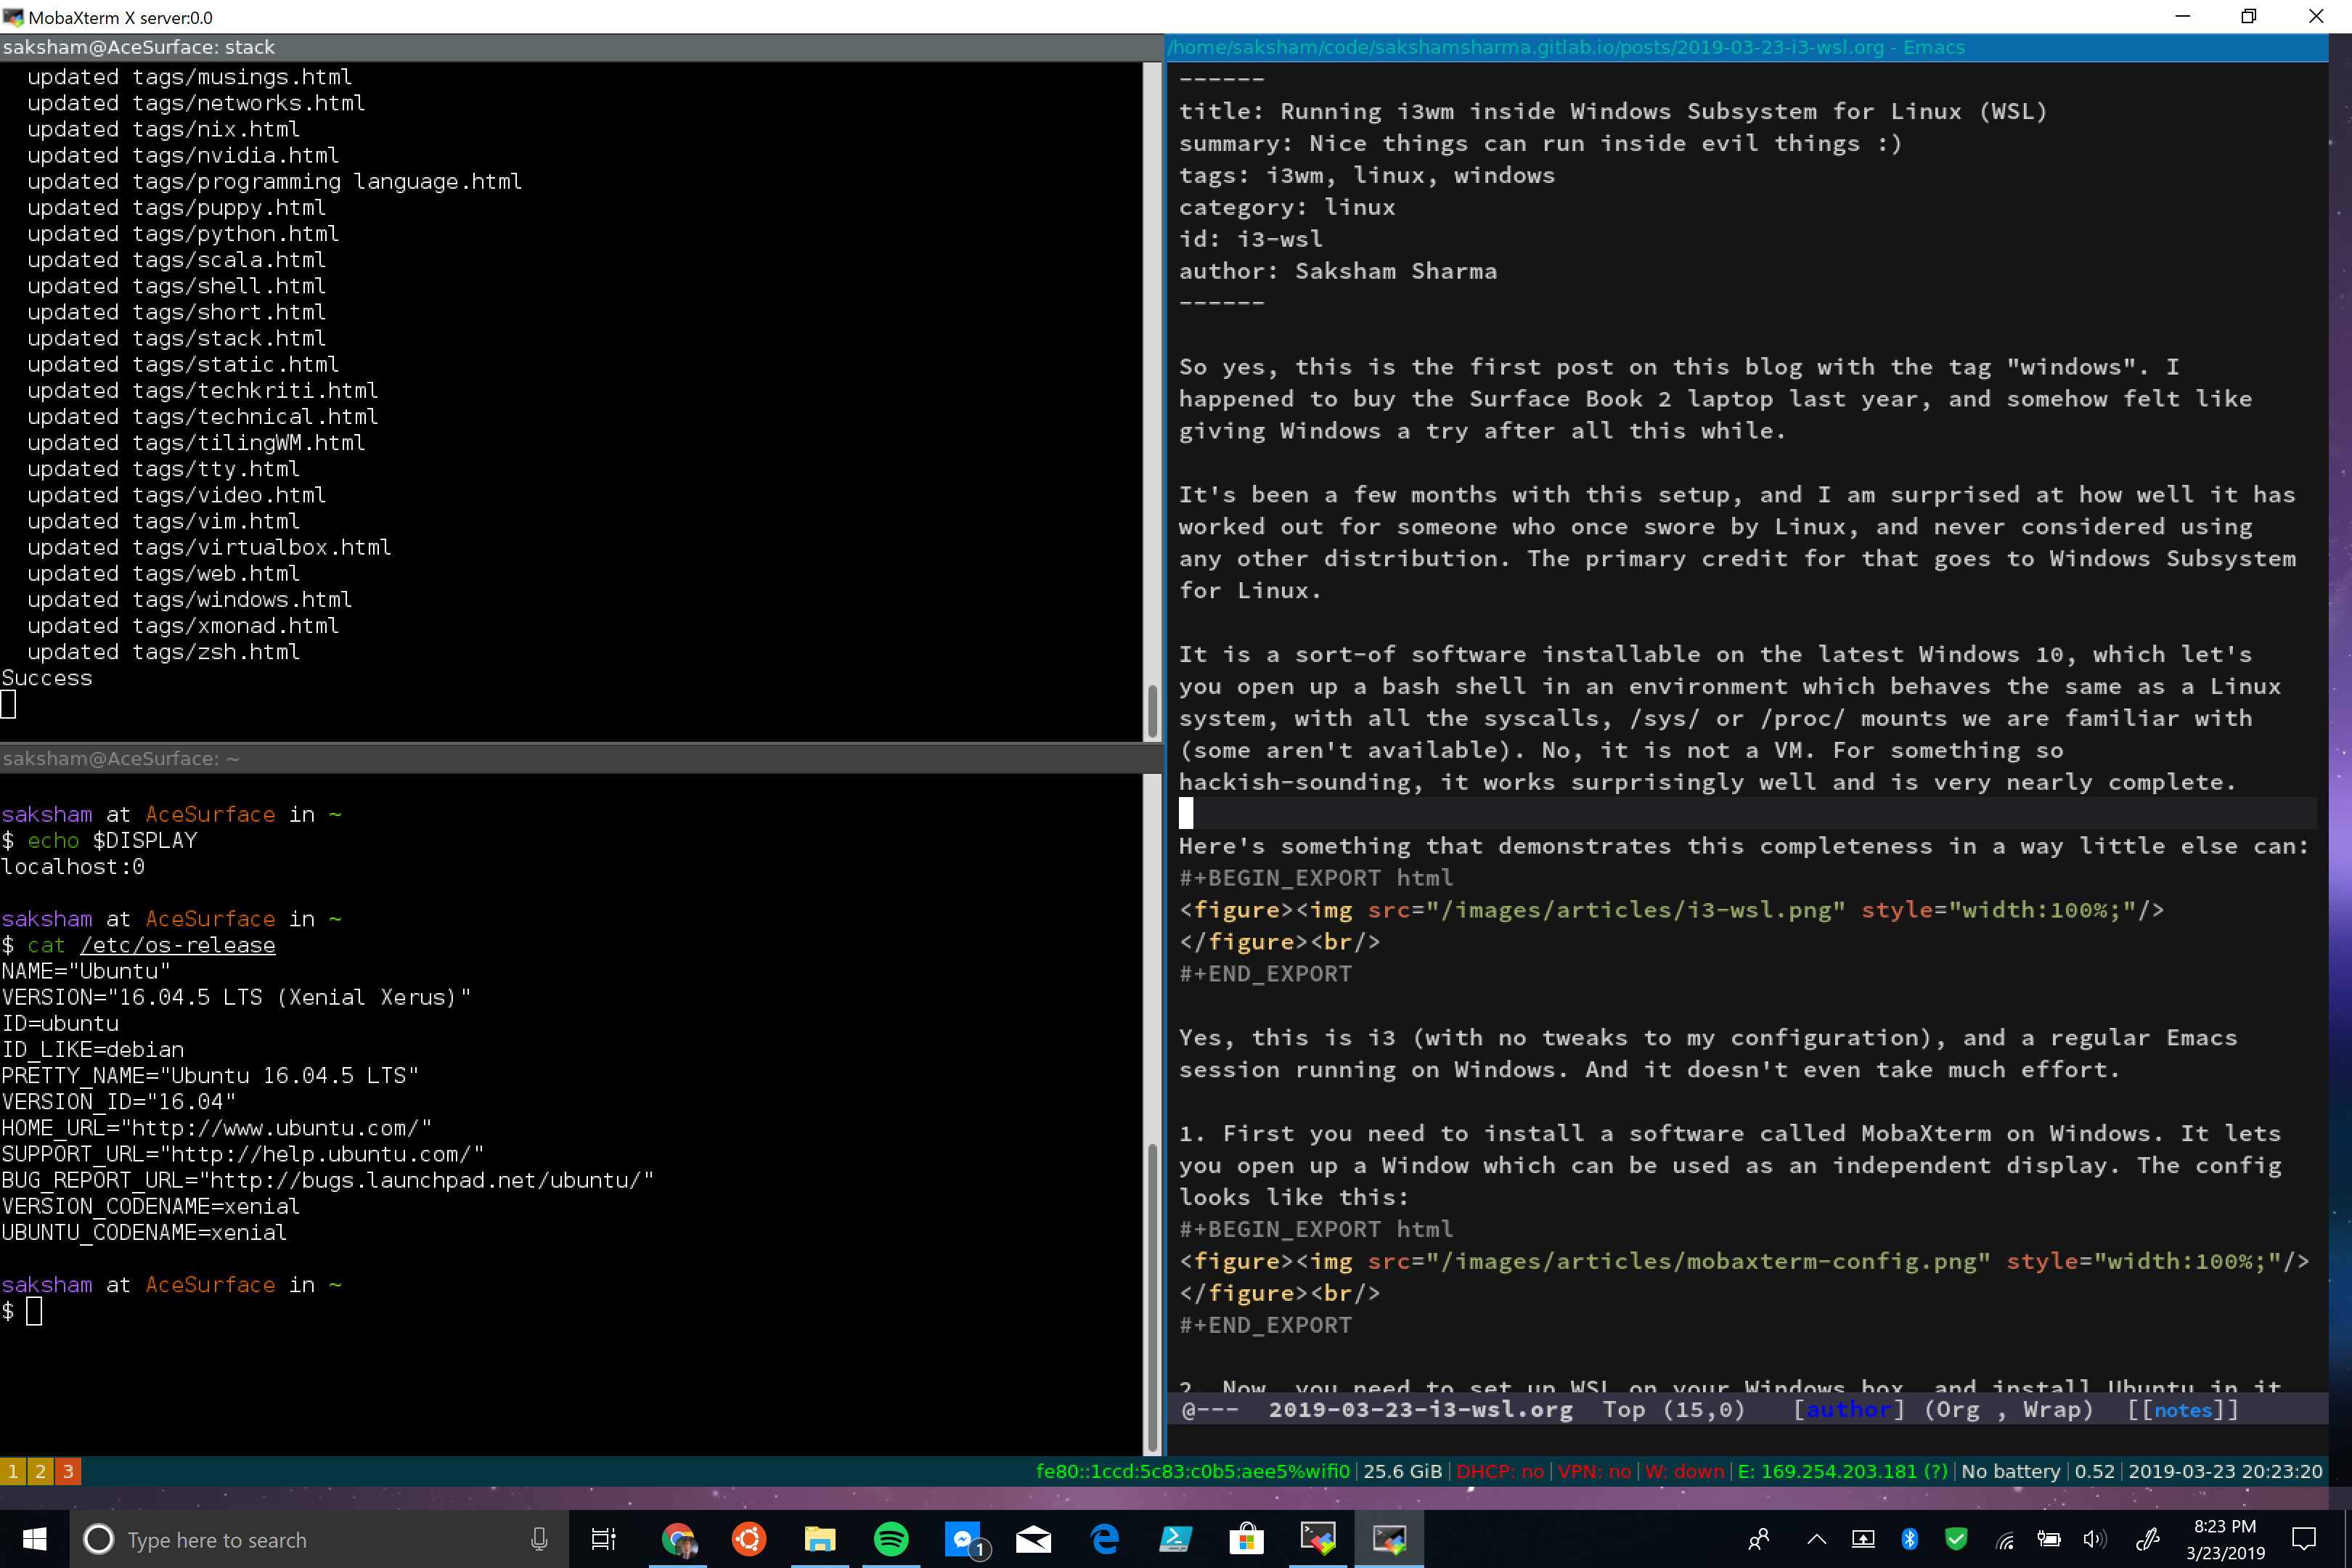 AceHack-Running i3wm inside Windows Subsystem for Linux (WSL